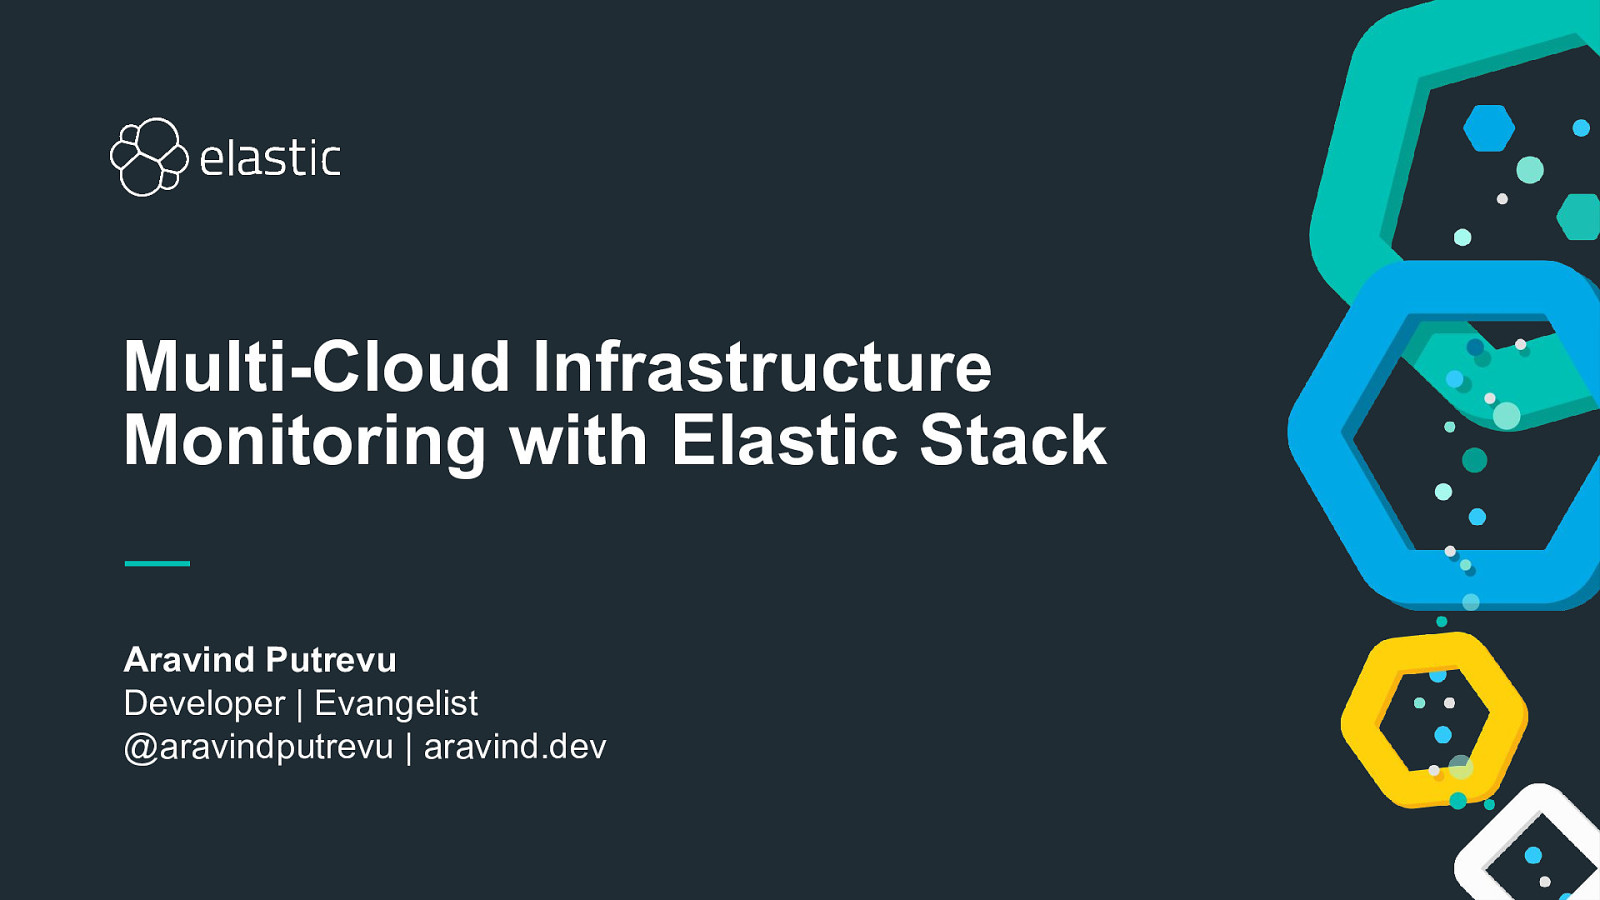 Multi-Cloud Monitoring using Elastic Stack